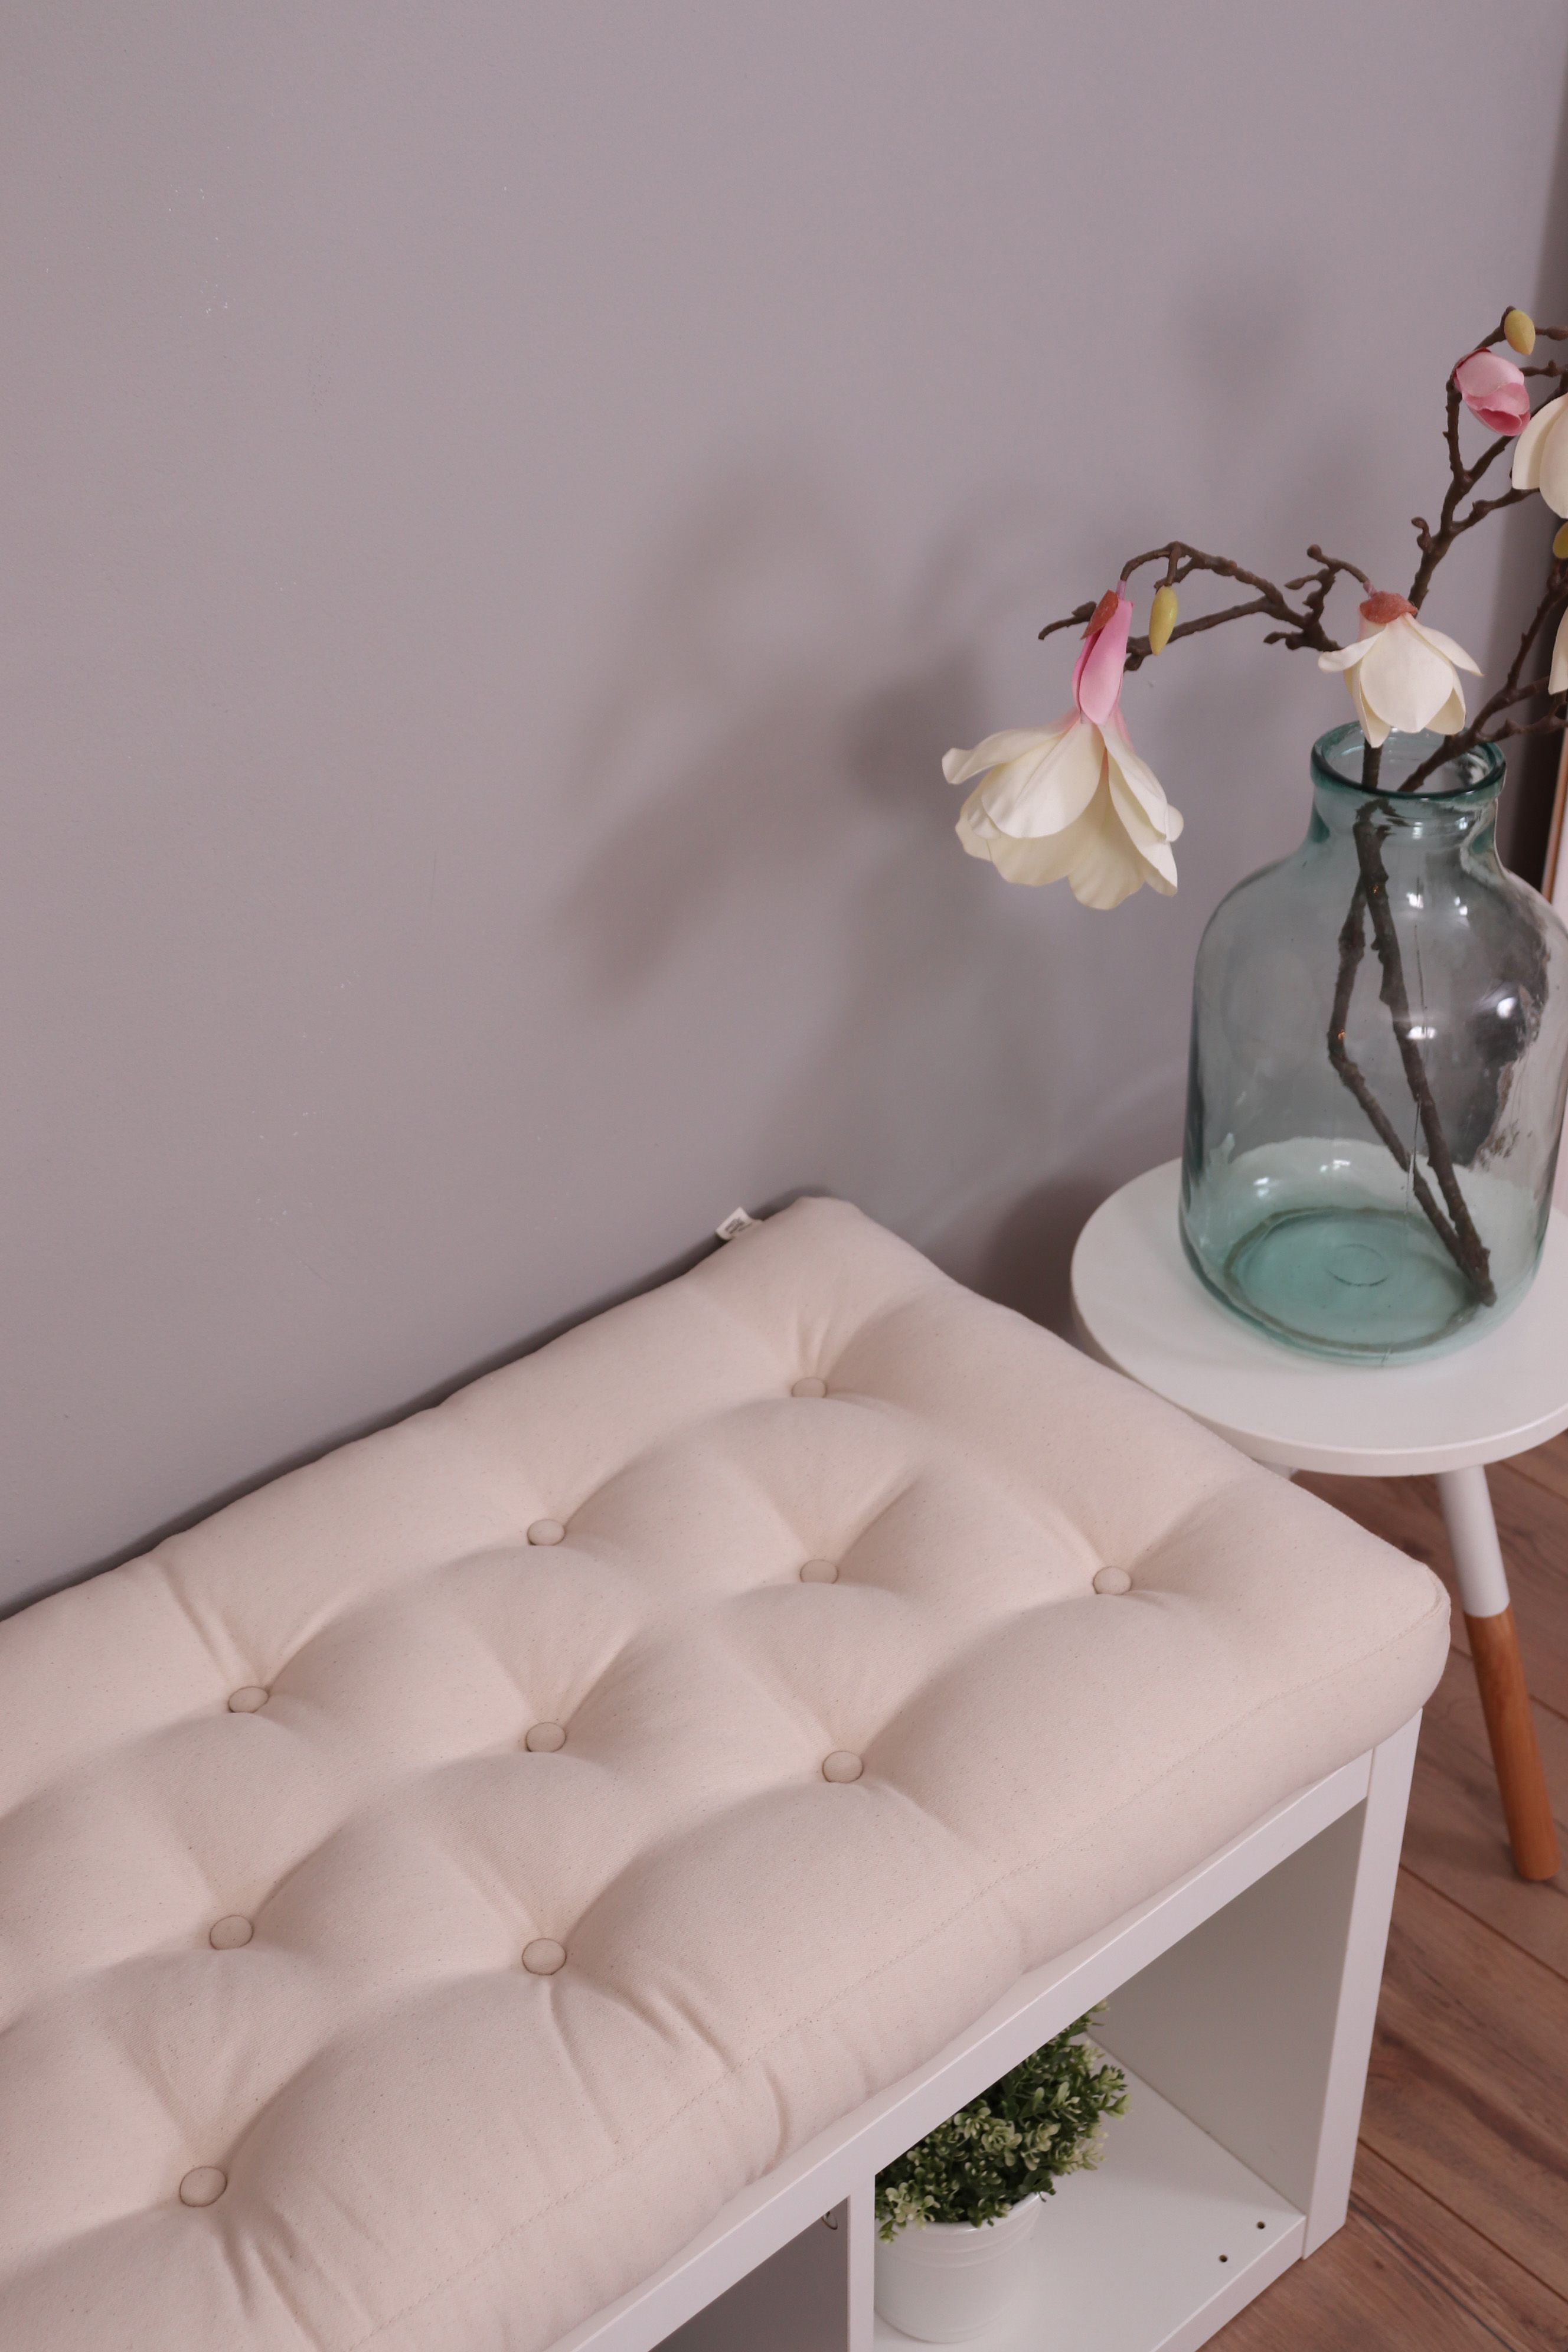 3 Tufted Seat Cushion Home Of Wool All Natural Decor Bedding Kallax Ikea Bench Cushions Ikea Window Seat